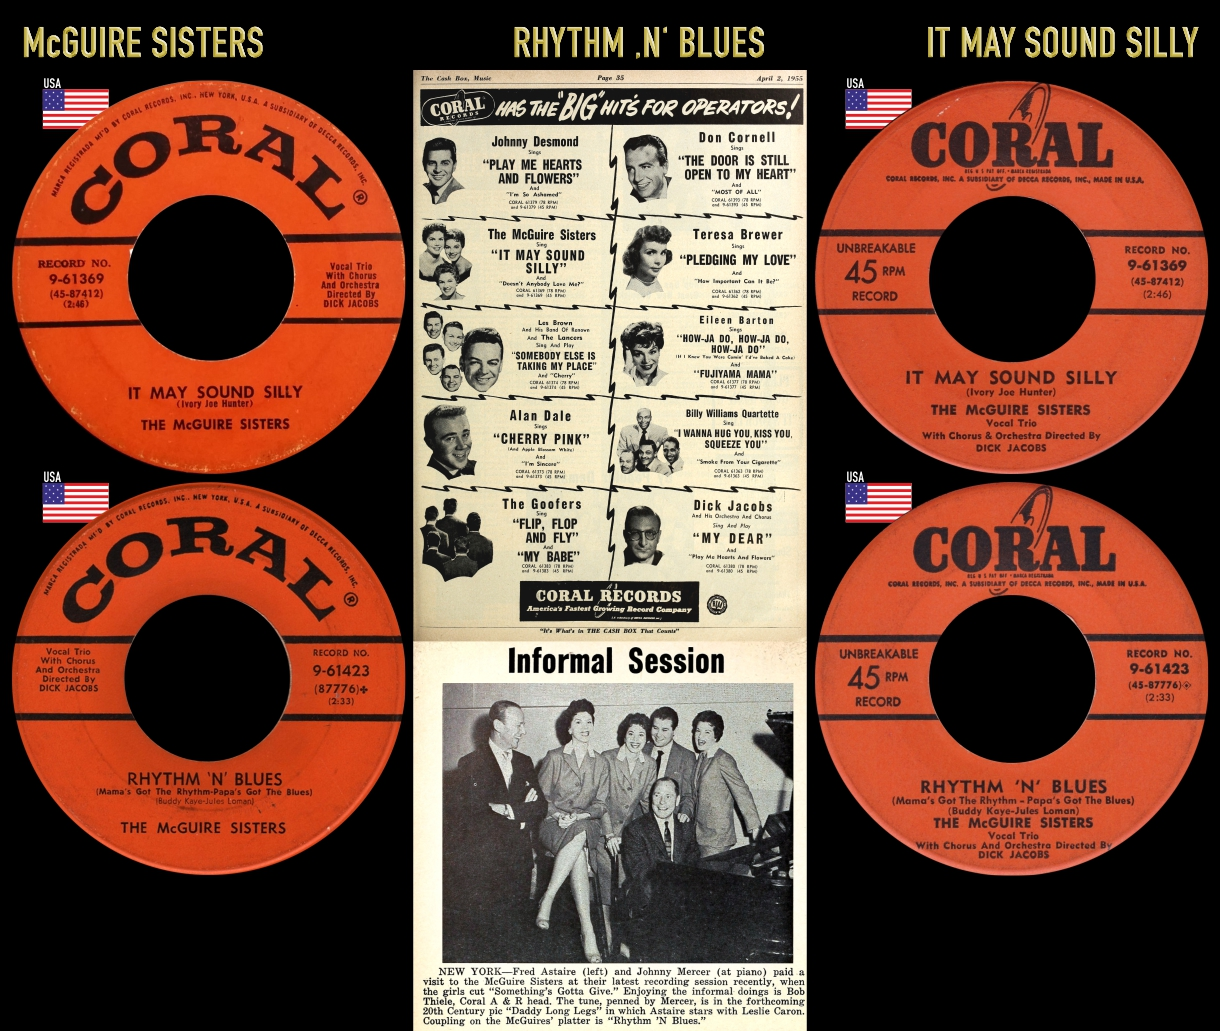 550521_McGuire Sisters_It May Sound Silly_Rhythn 'N' Blues